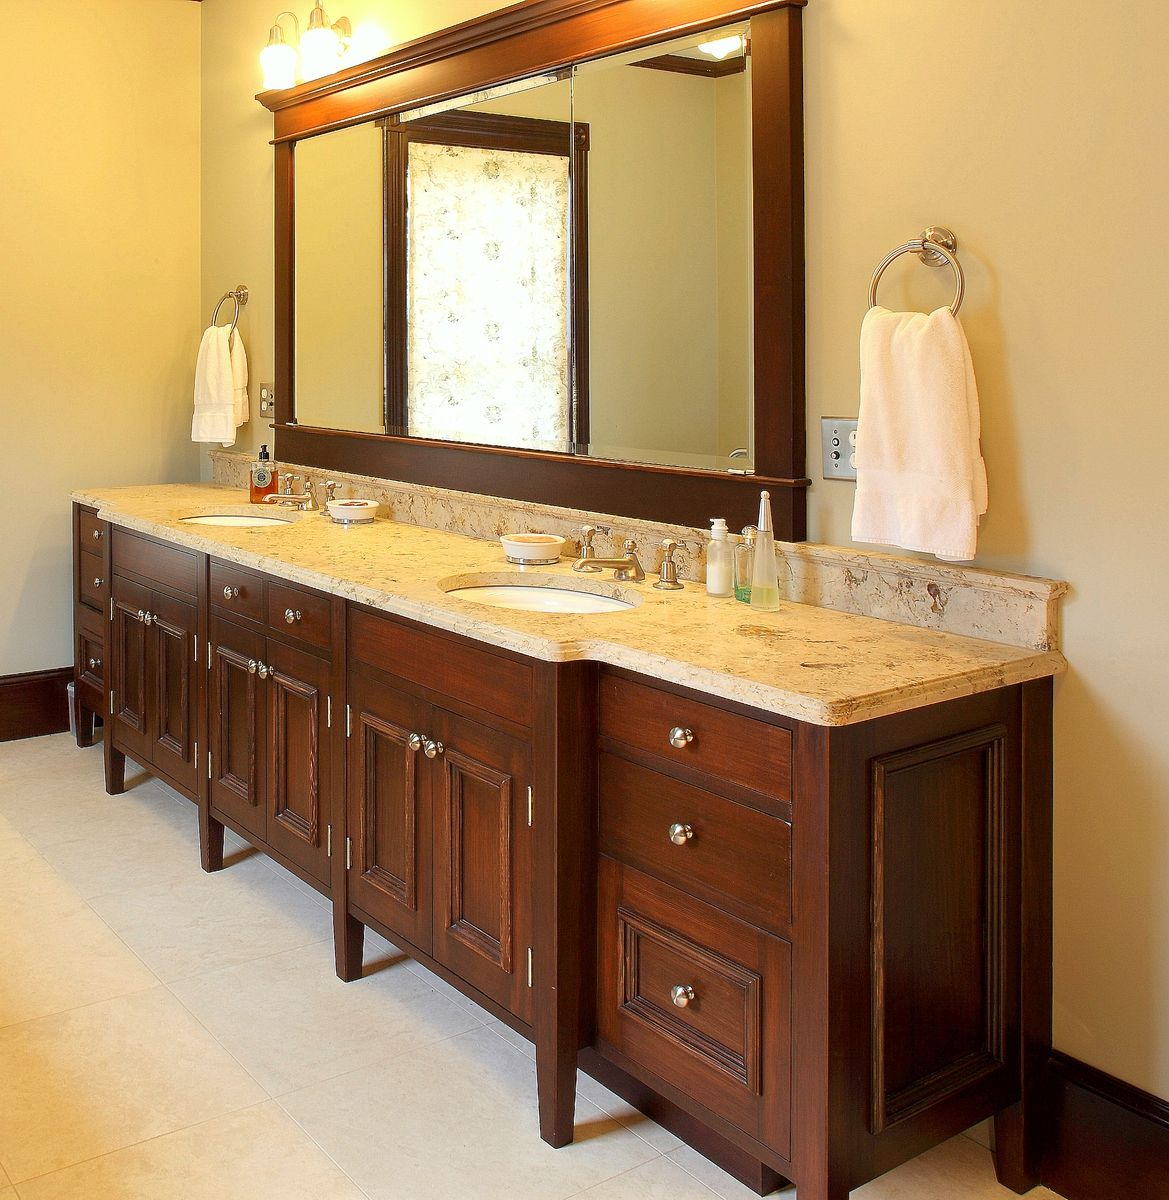 Custom Made Bathroom Vanity Units hand made double sink bath vanitybenchmark woodworks